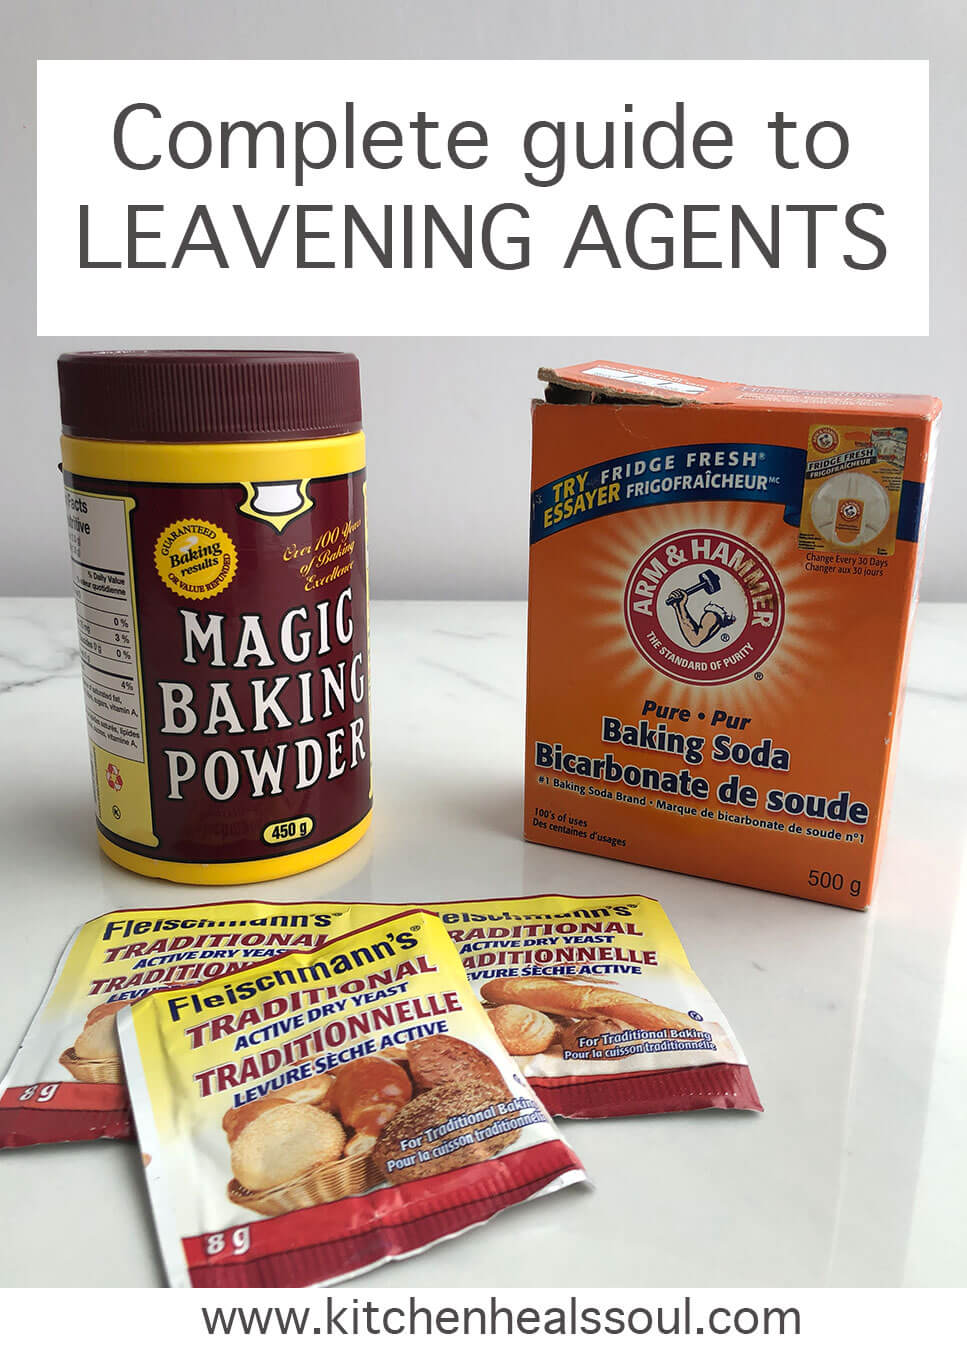 Burgundy and yellow container of Magic baking powder, an orange box of Arm & Hammer baking soda, and packets of Fleischman's traditional yeast